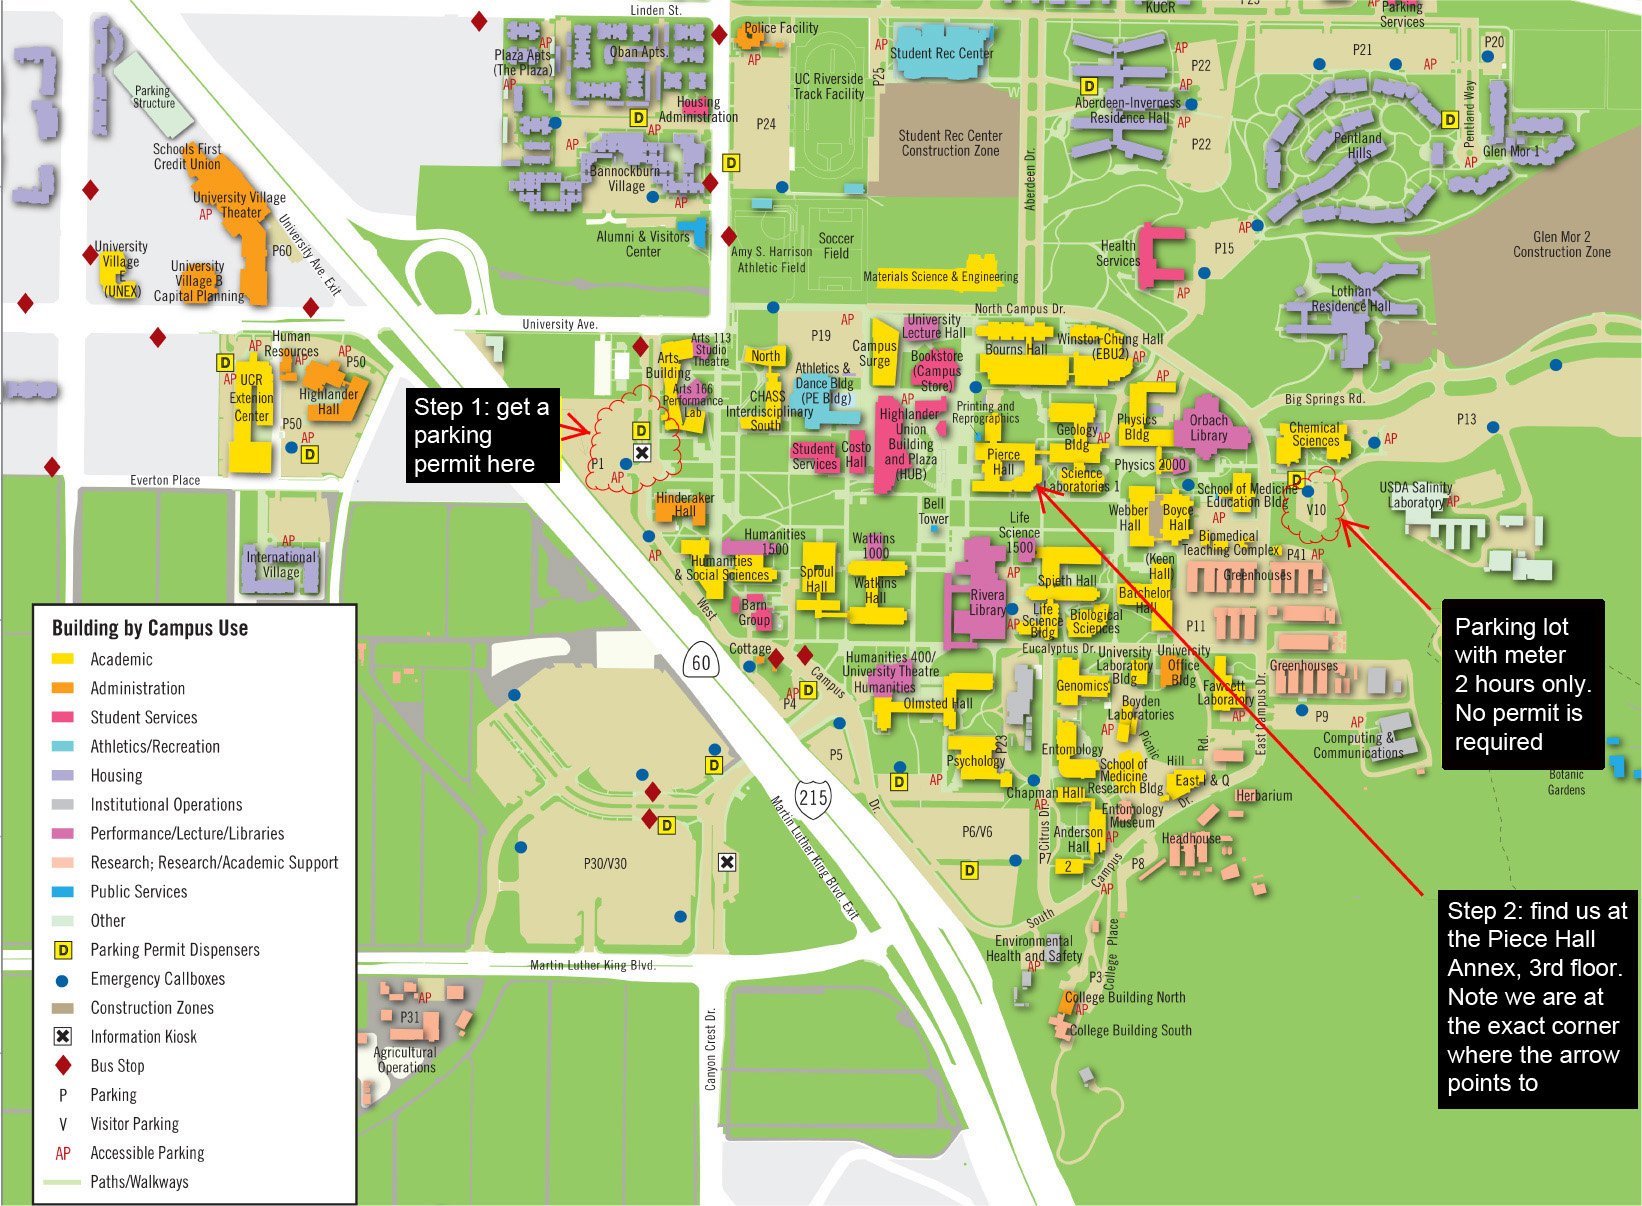 People - Yin Group on ucr campus map 2014, ucr orientation 2015, ucr graduation 2015,